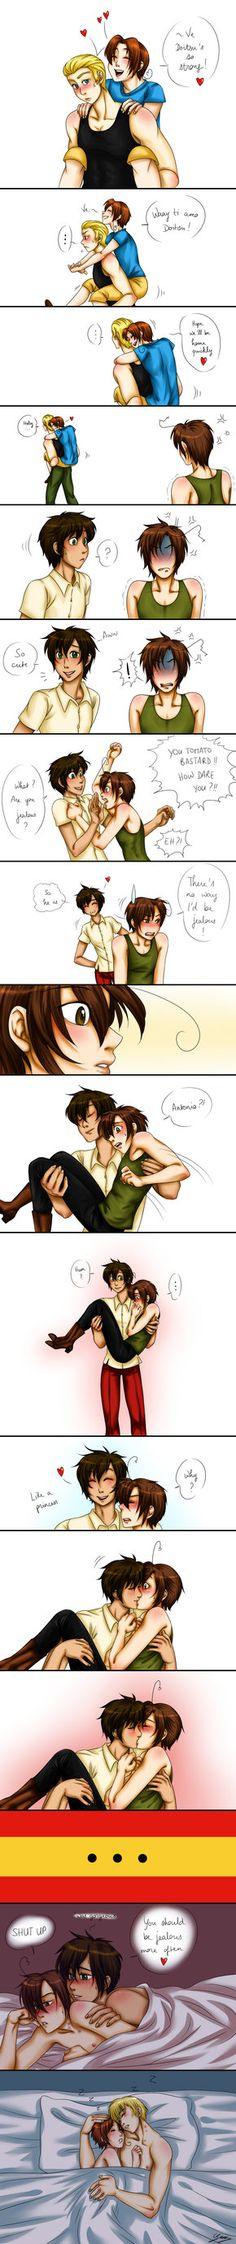 APH - Jealous by x-Lilou-chan-x on DeviantArt